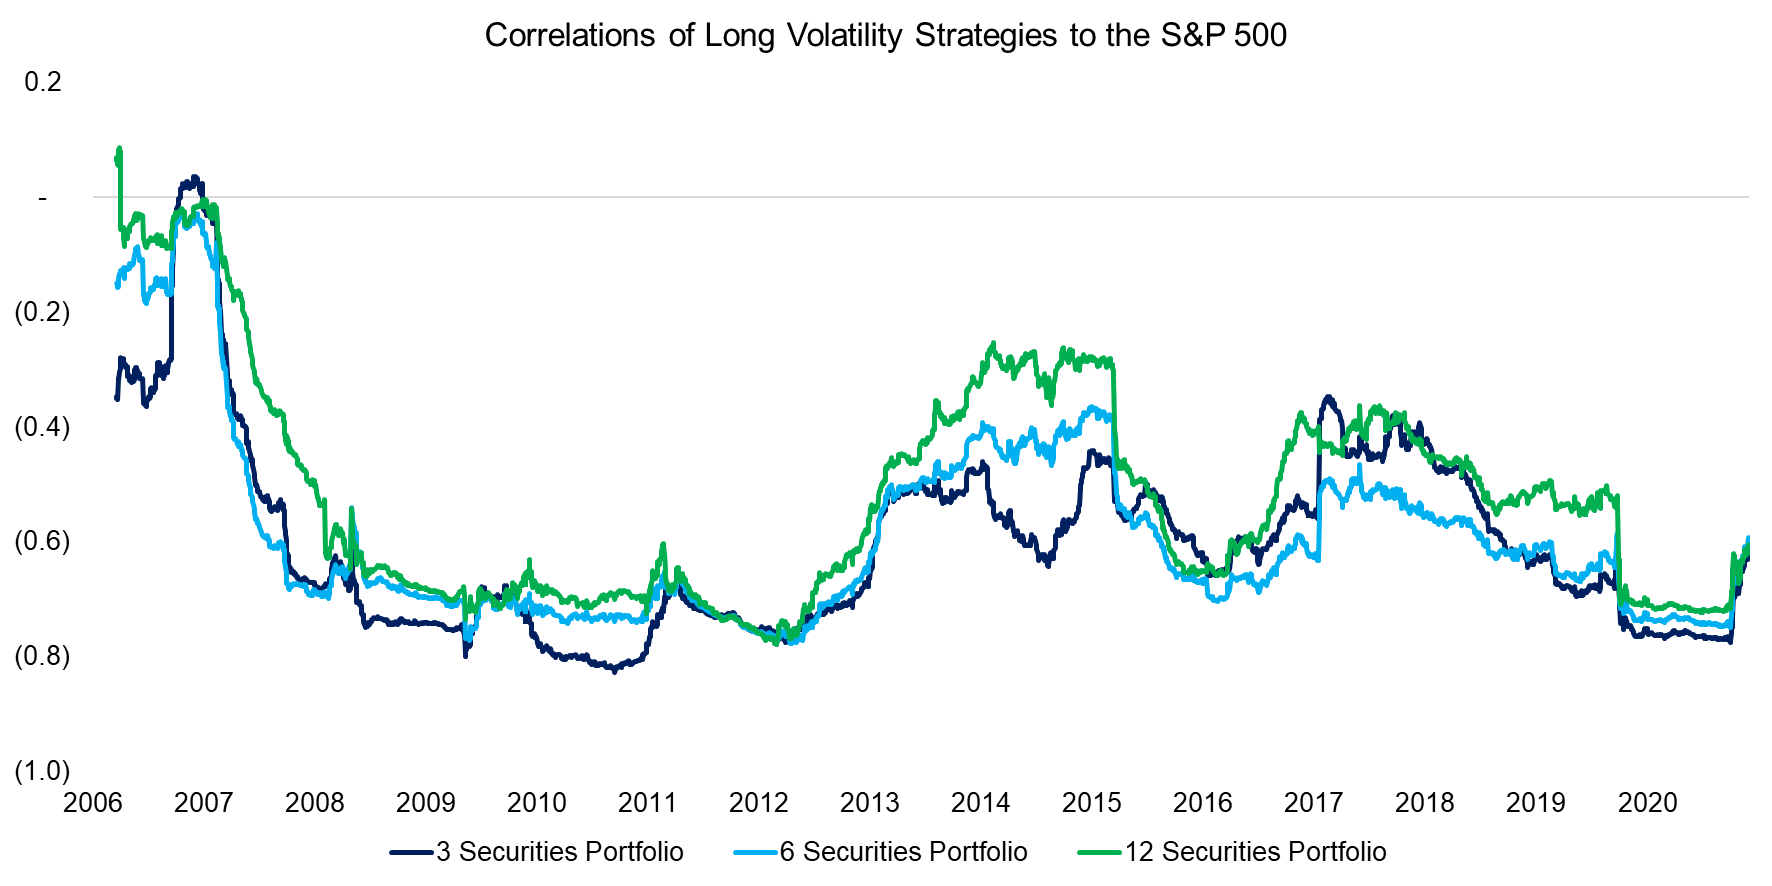 Correlations of Long Volatility Strategies to the S&P 500